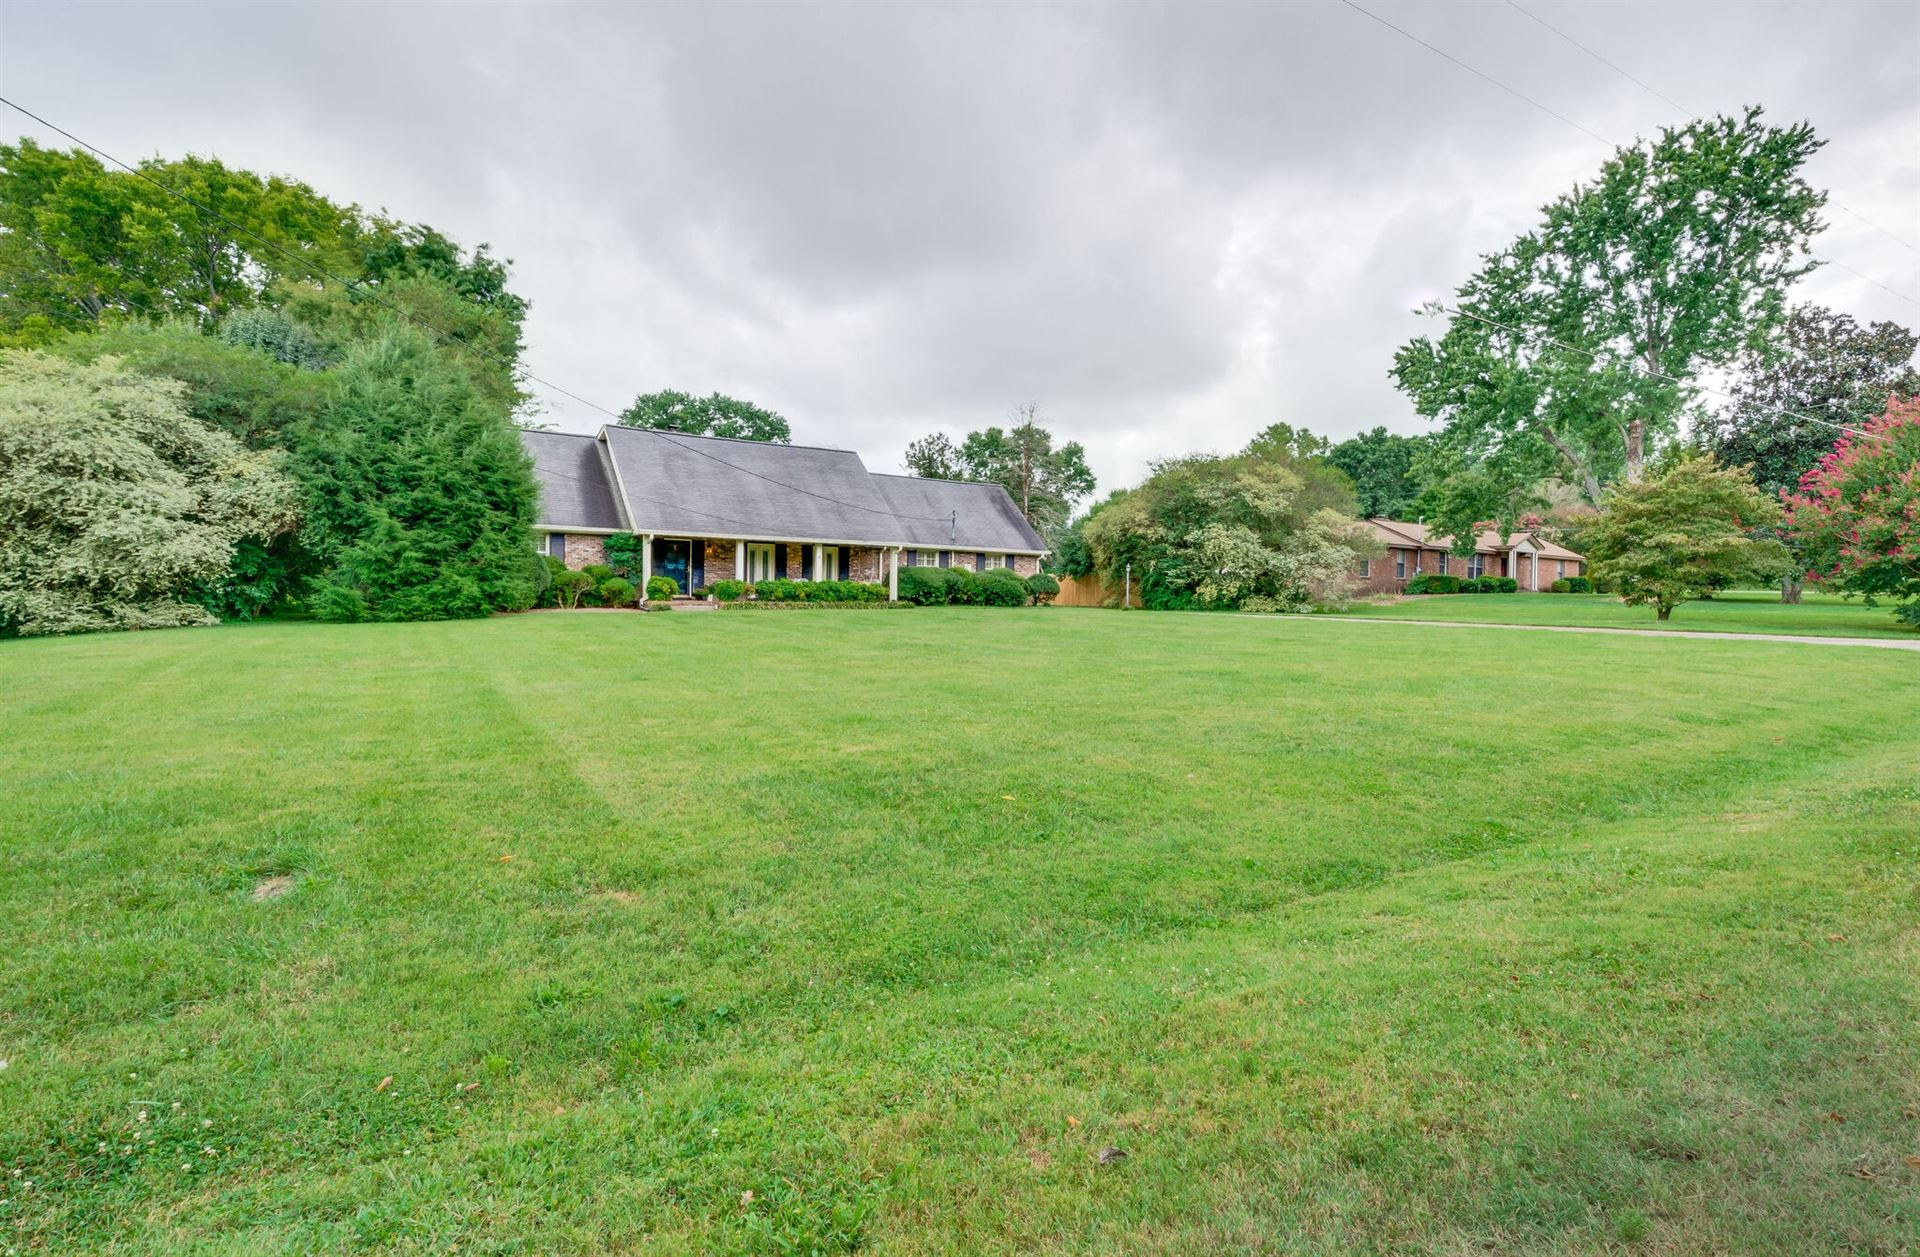 Photo of 1226 Haber Dr, Brentwood, TN 37027 (MLS # 2292716)